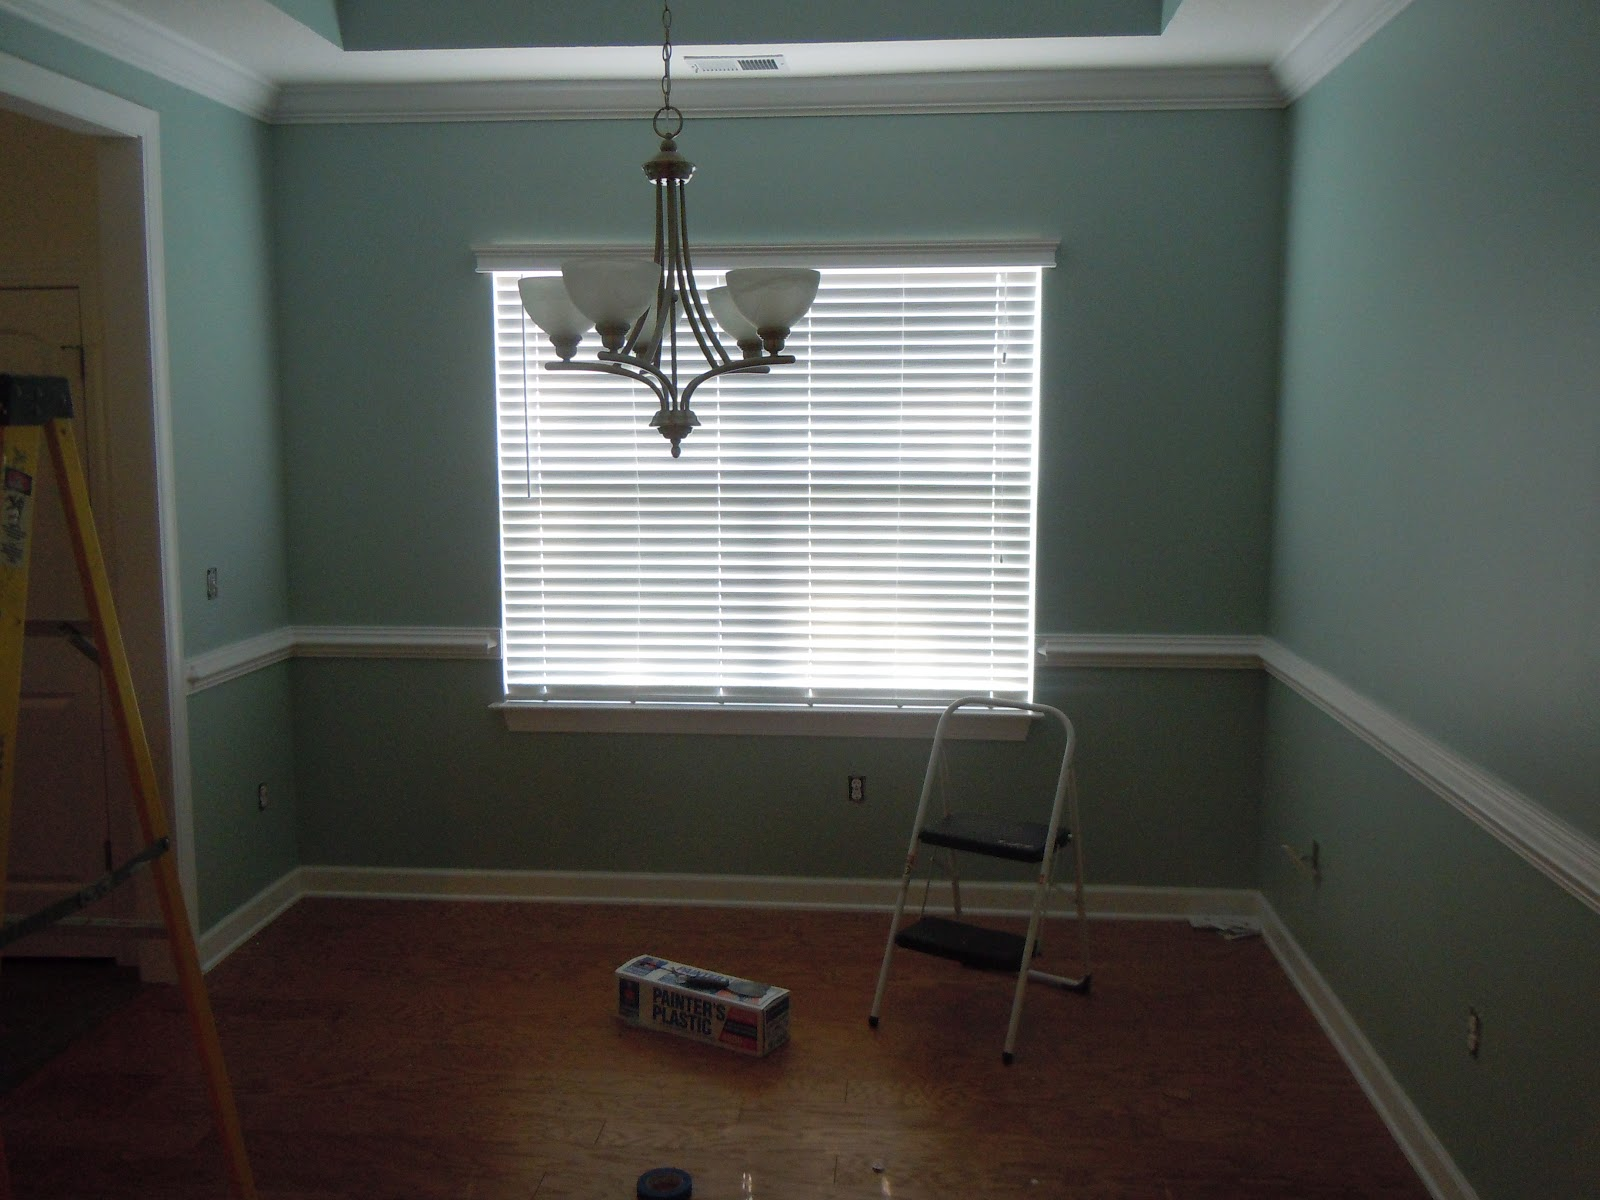 The Color Is Icy Teal By Glidden But We Used Behr Paint It A Very Soft Blue Green While Have That Large Window And Could